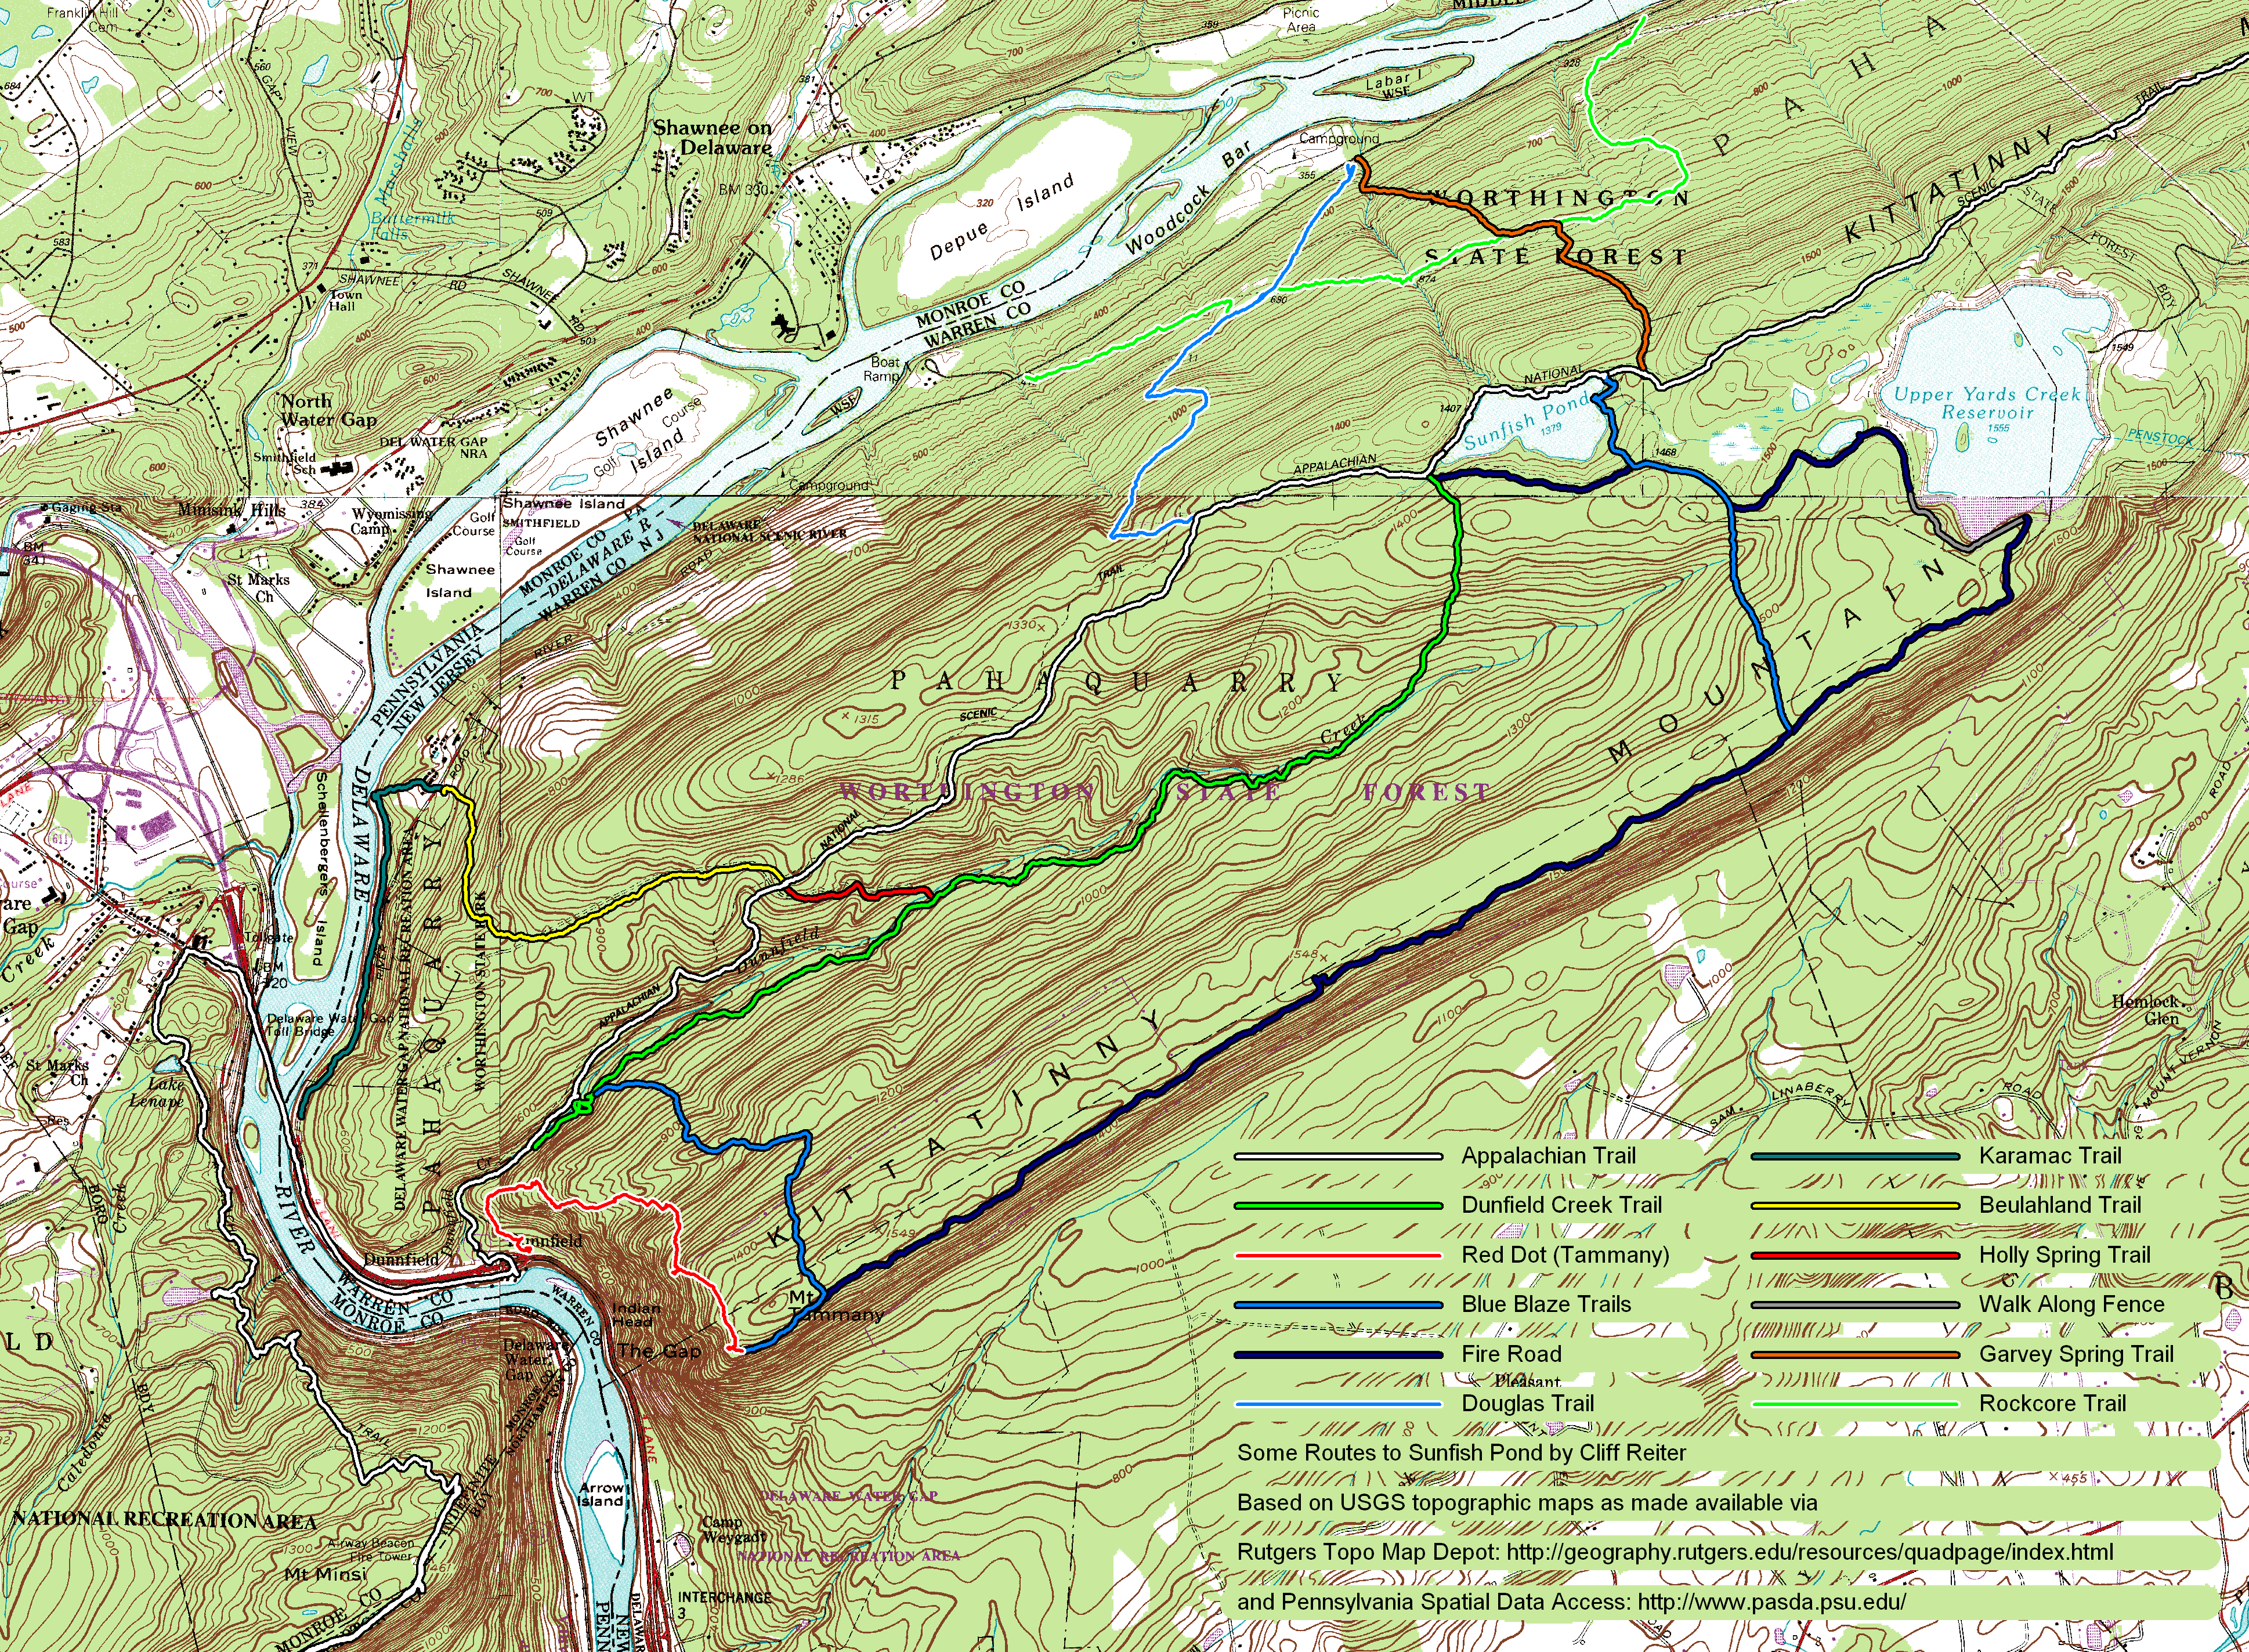 mount lafayette trail map with Getting To Sunfish Pond on Getting to sunfish pond as well Stats moreover Area further File Wisconsin in United States in addition Batesville Indiana.